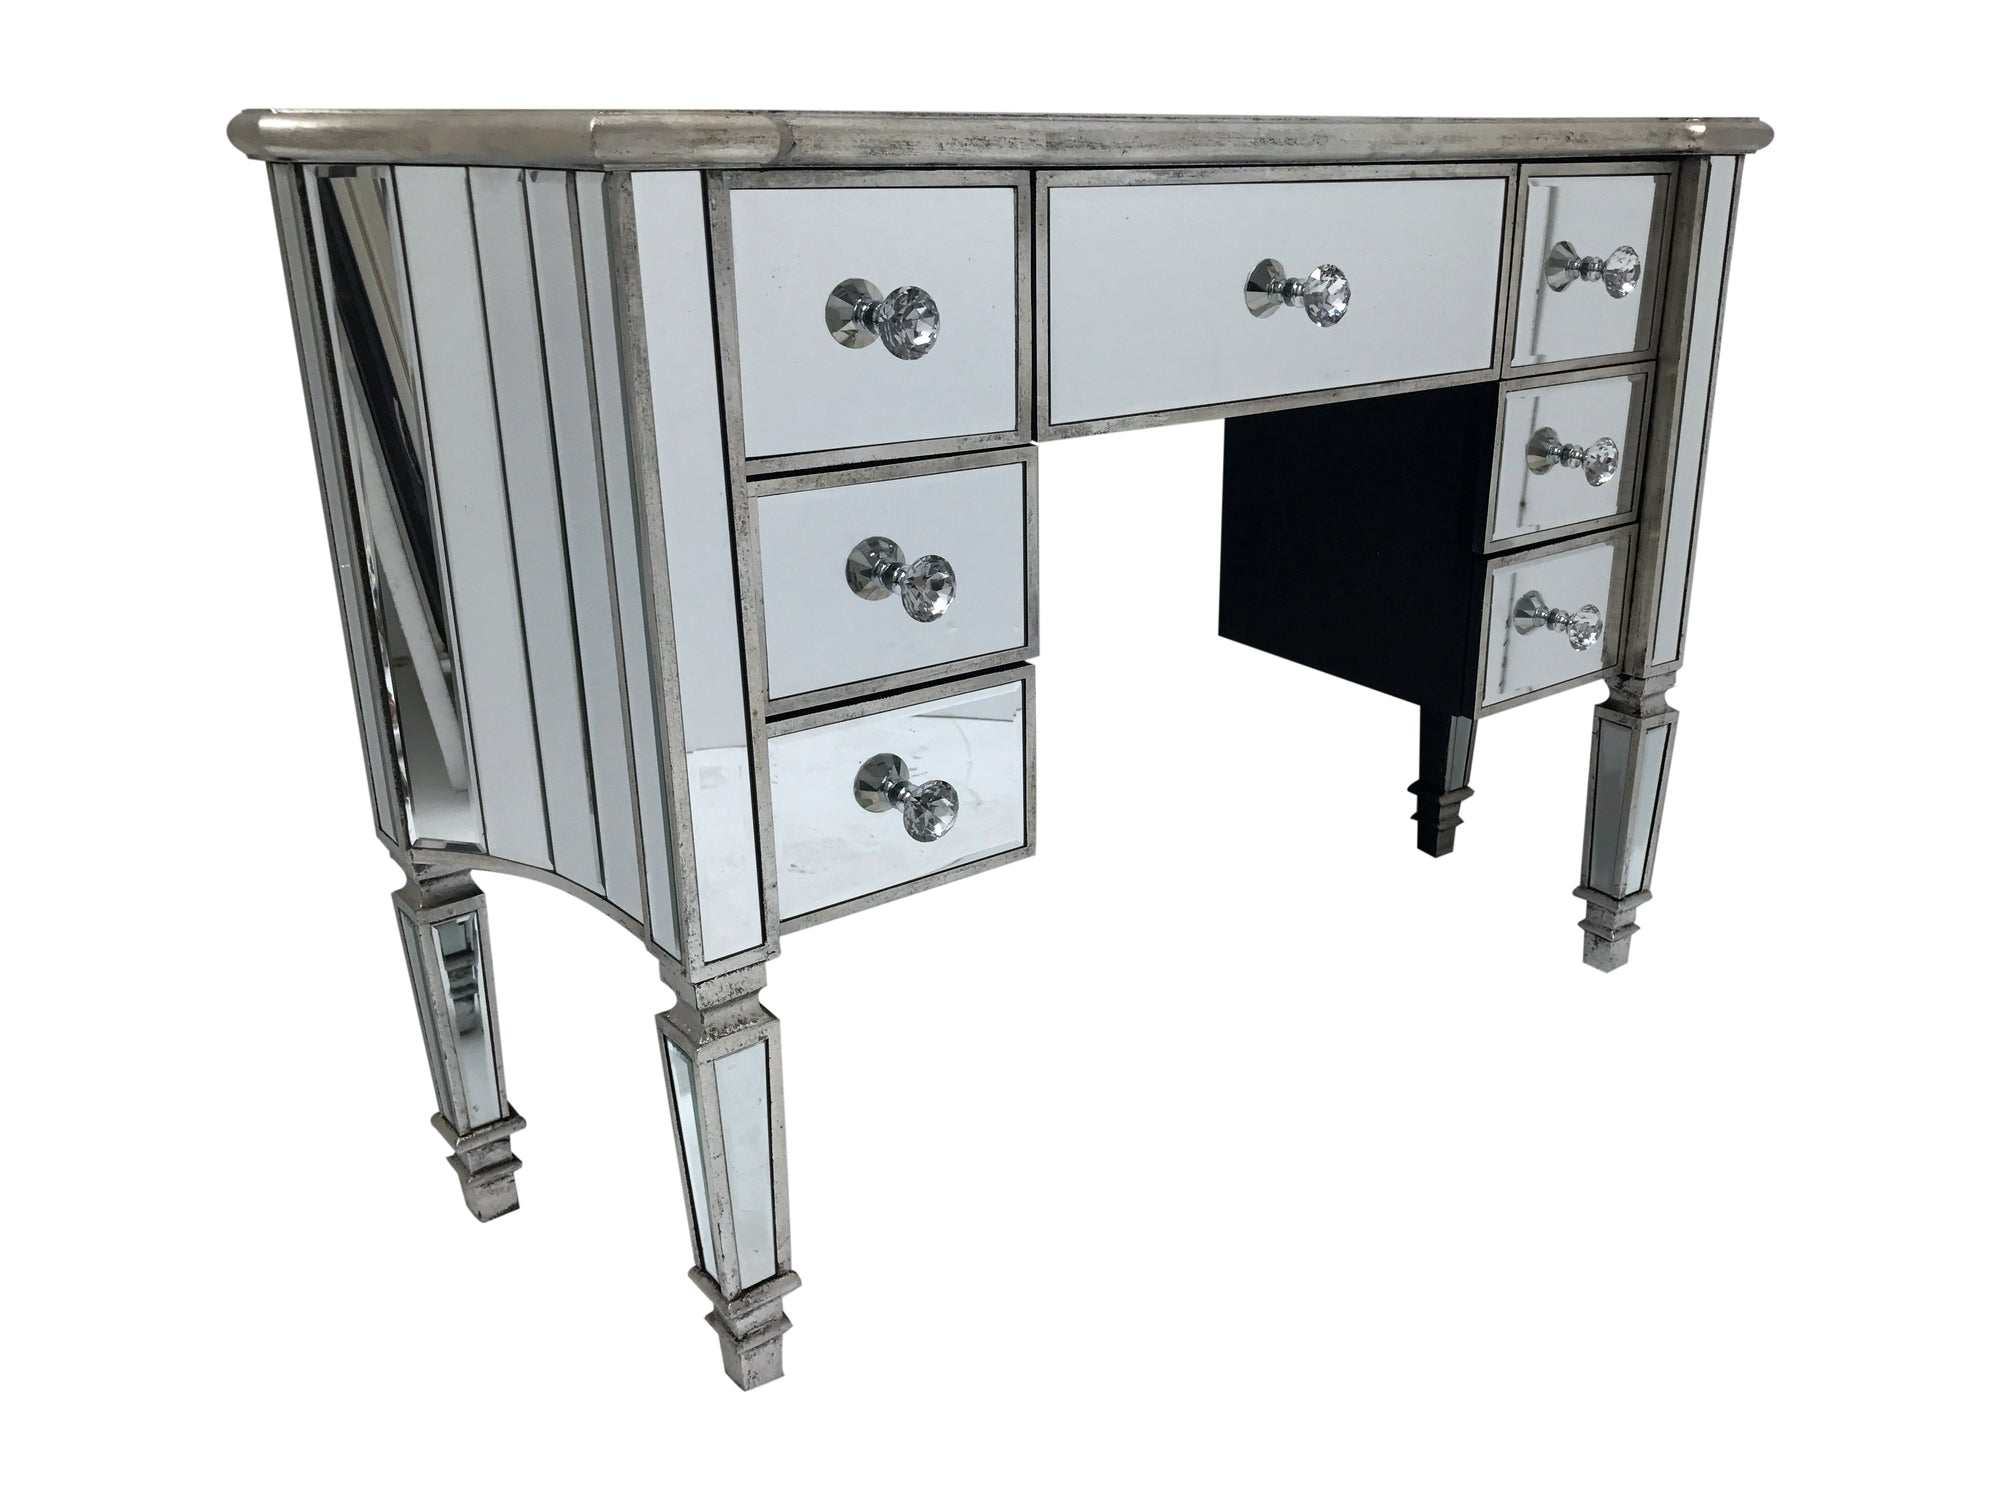 Kneehole mirrored dressing table, 7 drawers, crystal knobs, wood and mirror, antiqued silver.